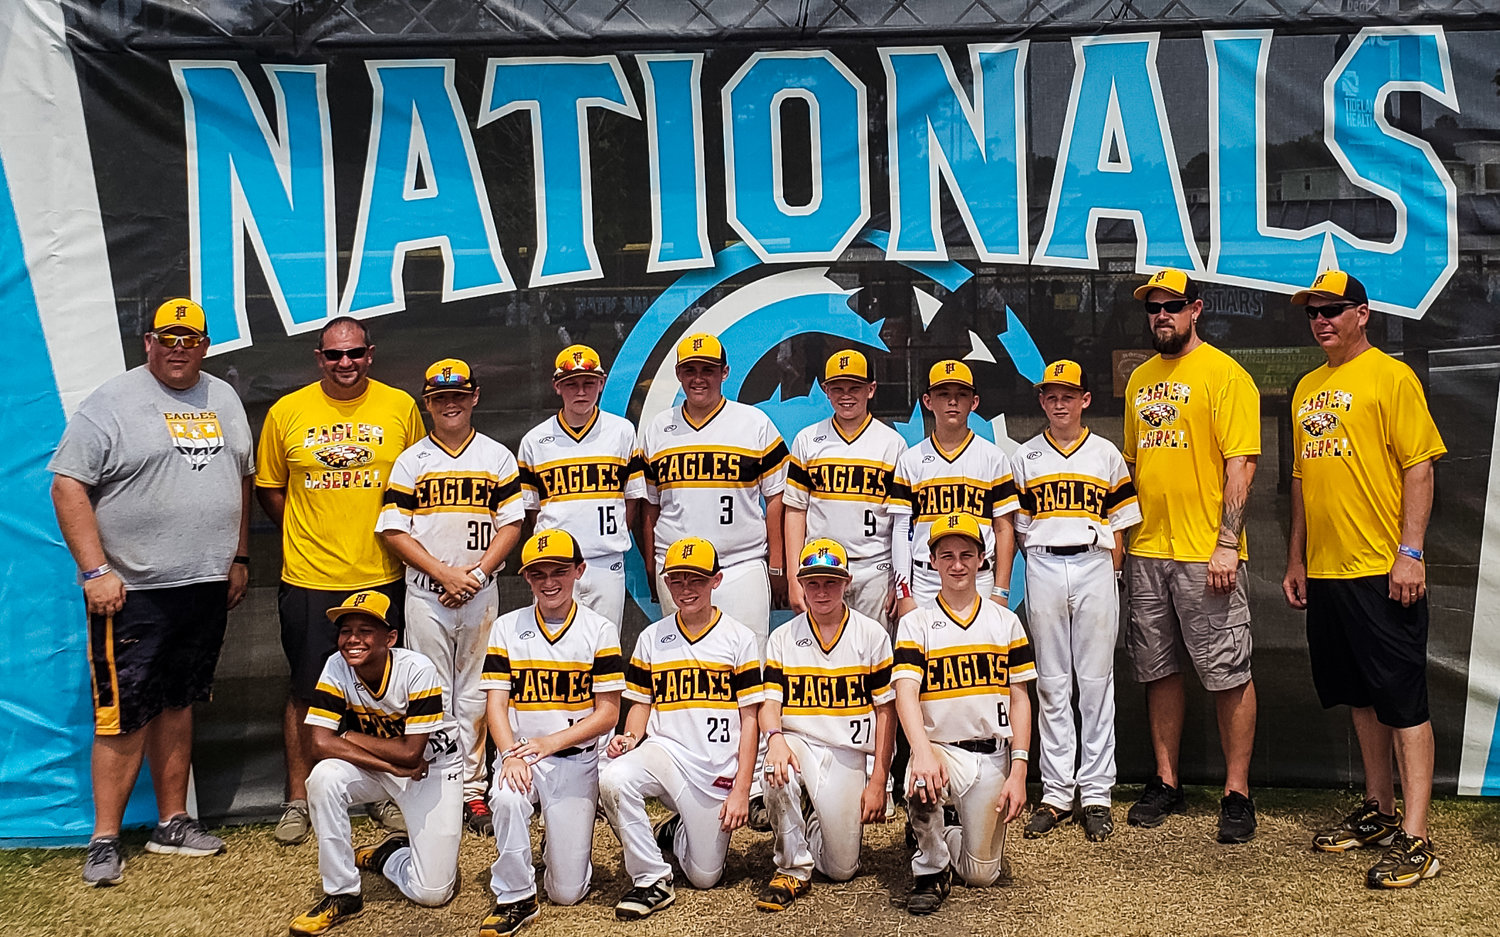 The 11U Eagles went 19-11-4 on the season, which included strong play in the Chesapeake Baseball Association and in multiple tournaments.